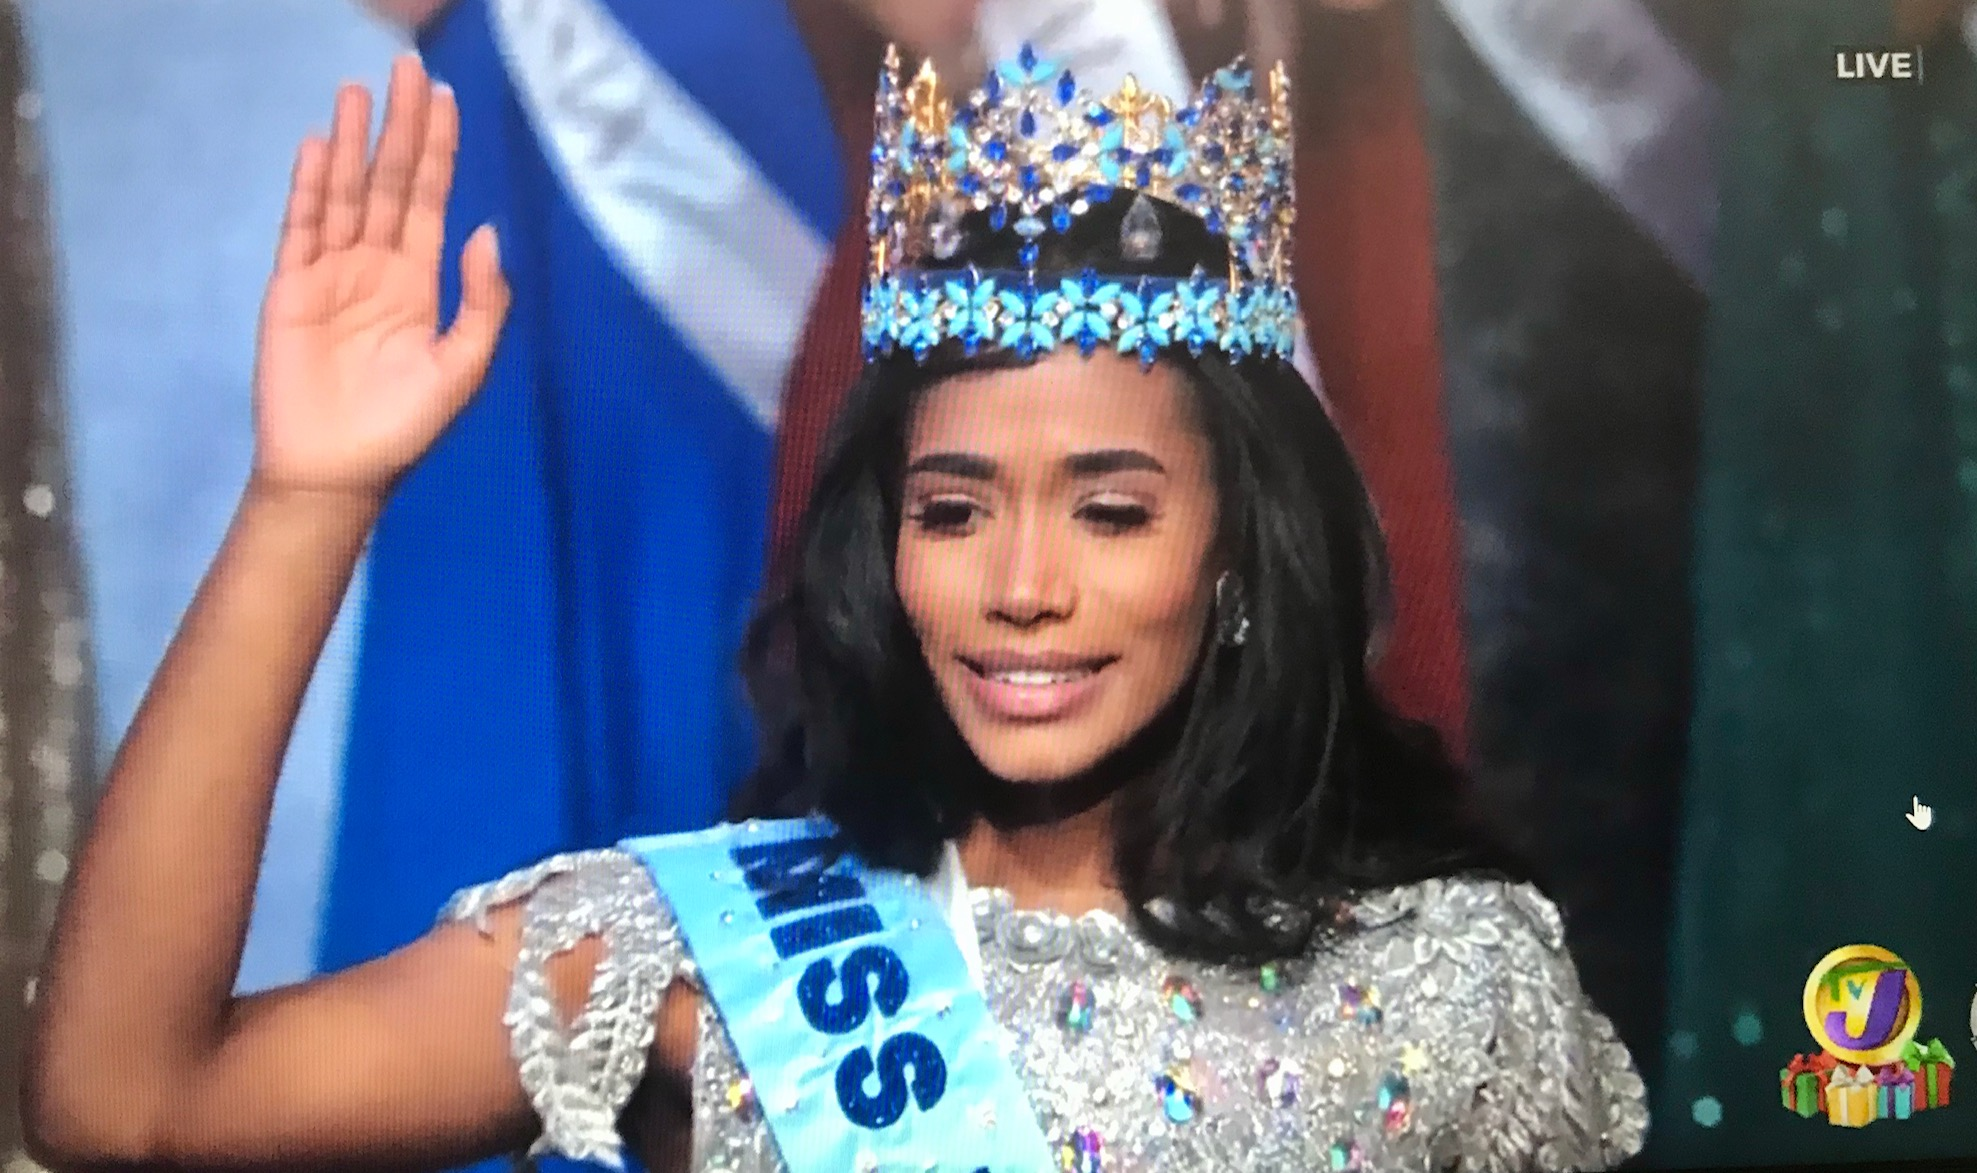 Miss World 2019 Toni-Ann Singh.